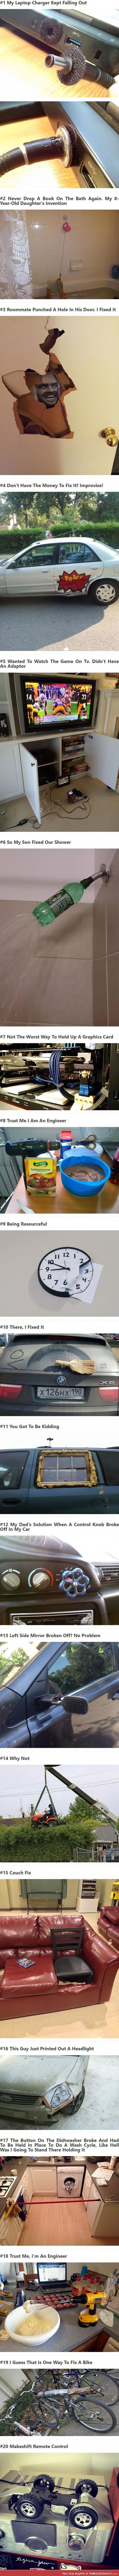 20 Times Engineers Showed Us How to Fix Everyday Things - FunSubstance Search for Fun - Funny Clone Funny 2018 20 Times Engineers Showed Us How to Fix Everyday Things - Stupid Funny, The Funny, Hilarious, Daily Funny, Ingenieur Humor, Improvise Adapt Overcome, Haha, Engineering Humor, Oui Oui